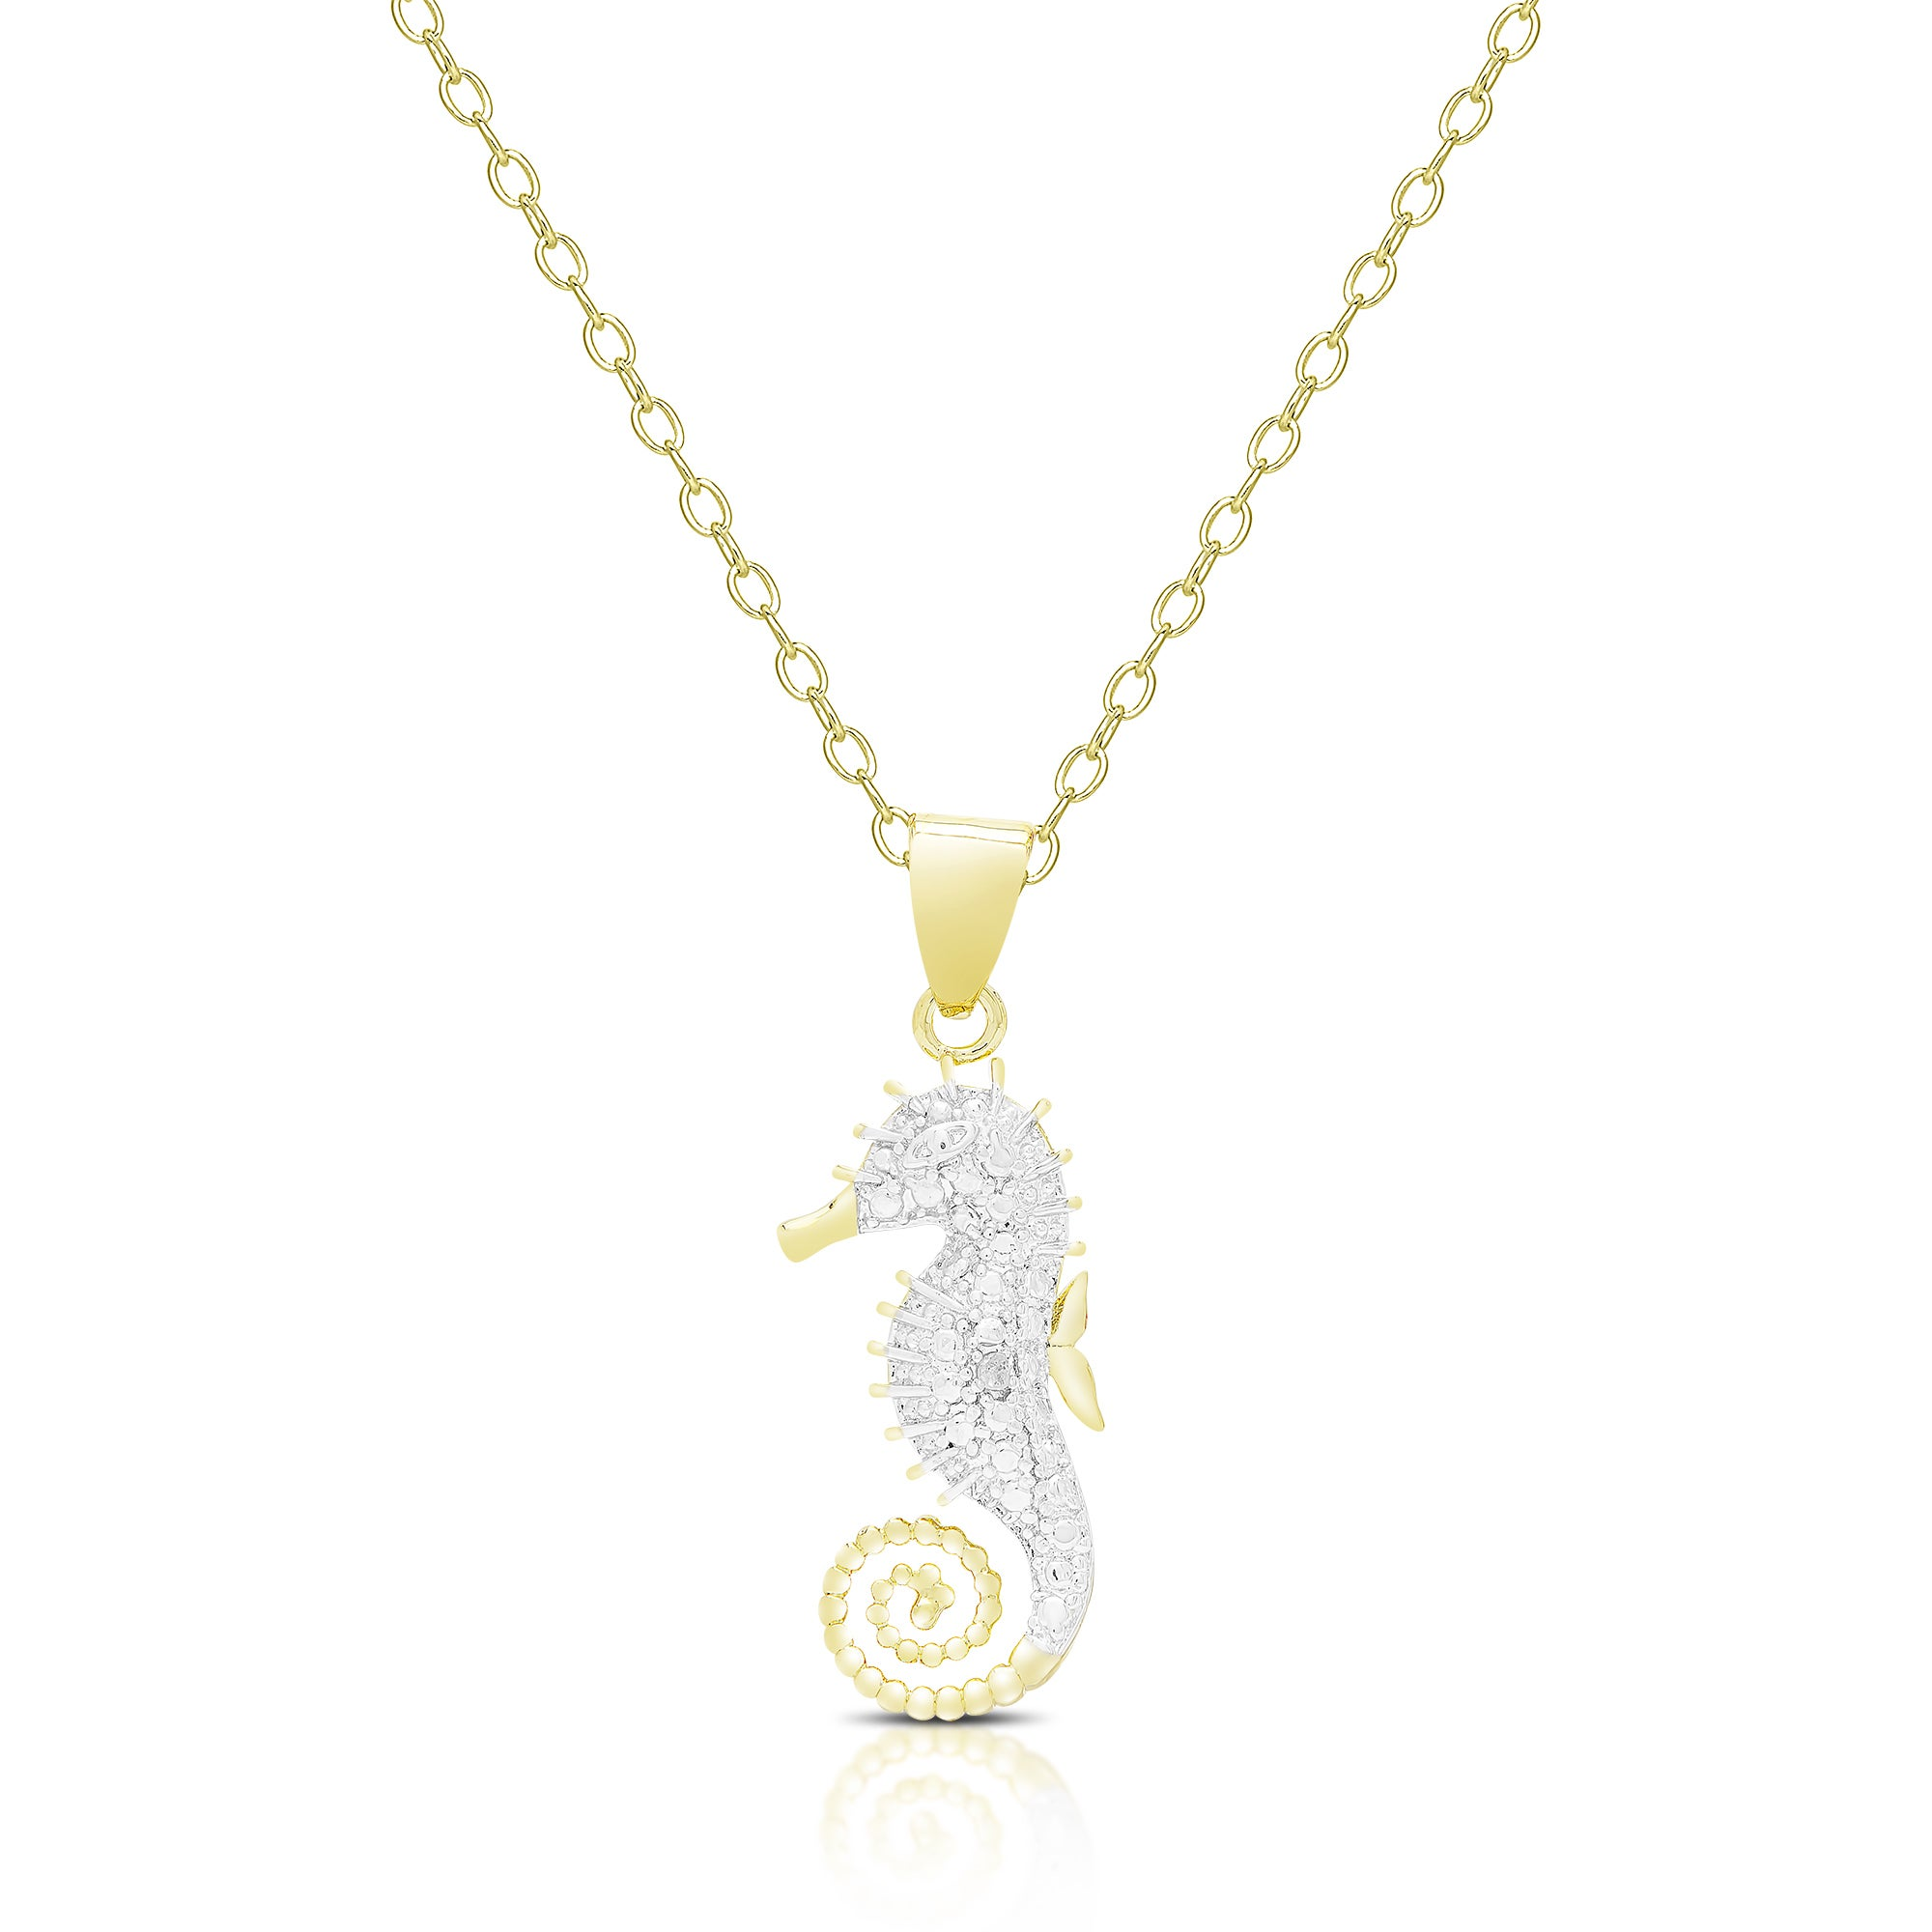 pin bead european chain necklace long seahorse jewelry silver